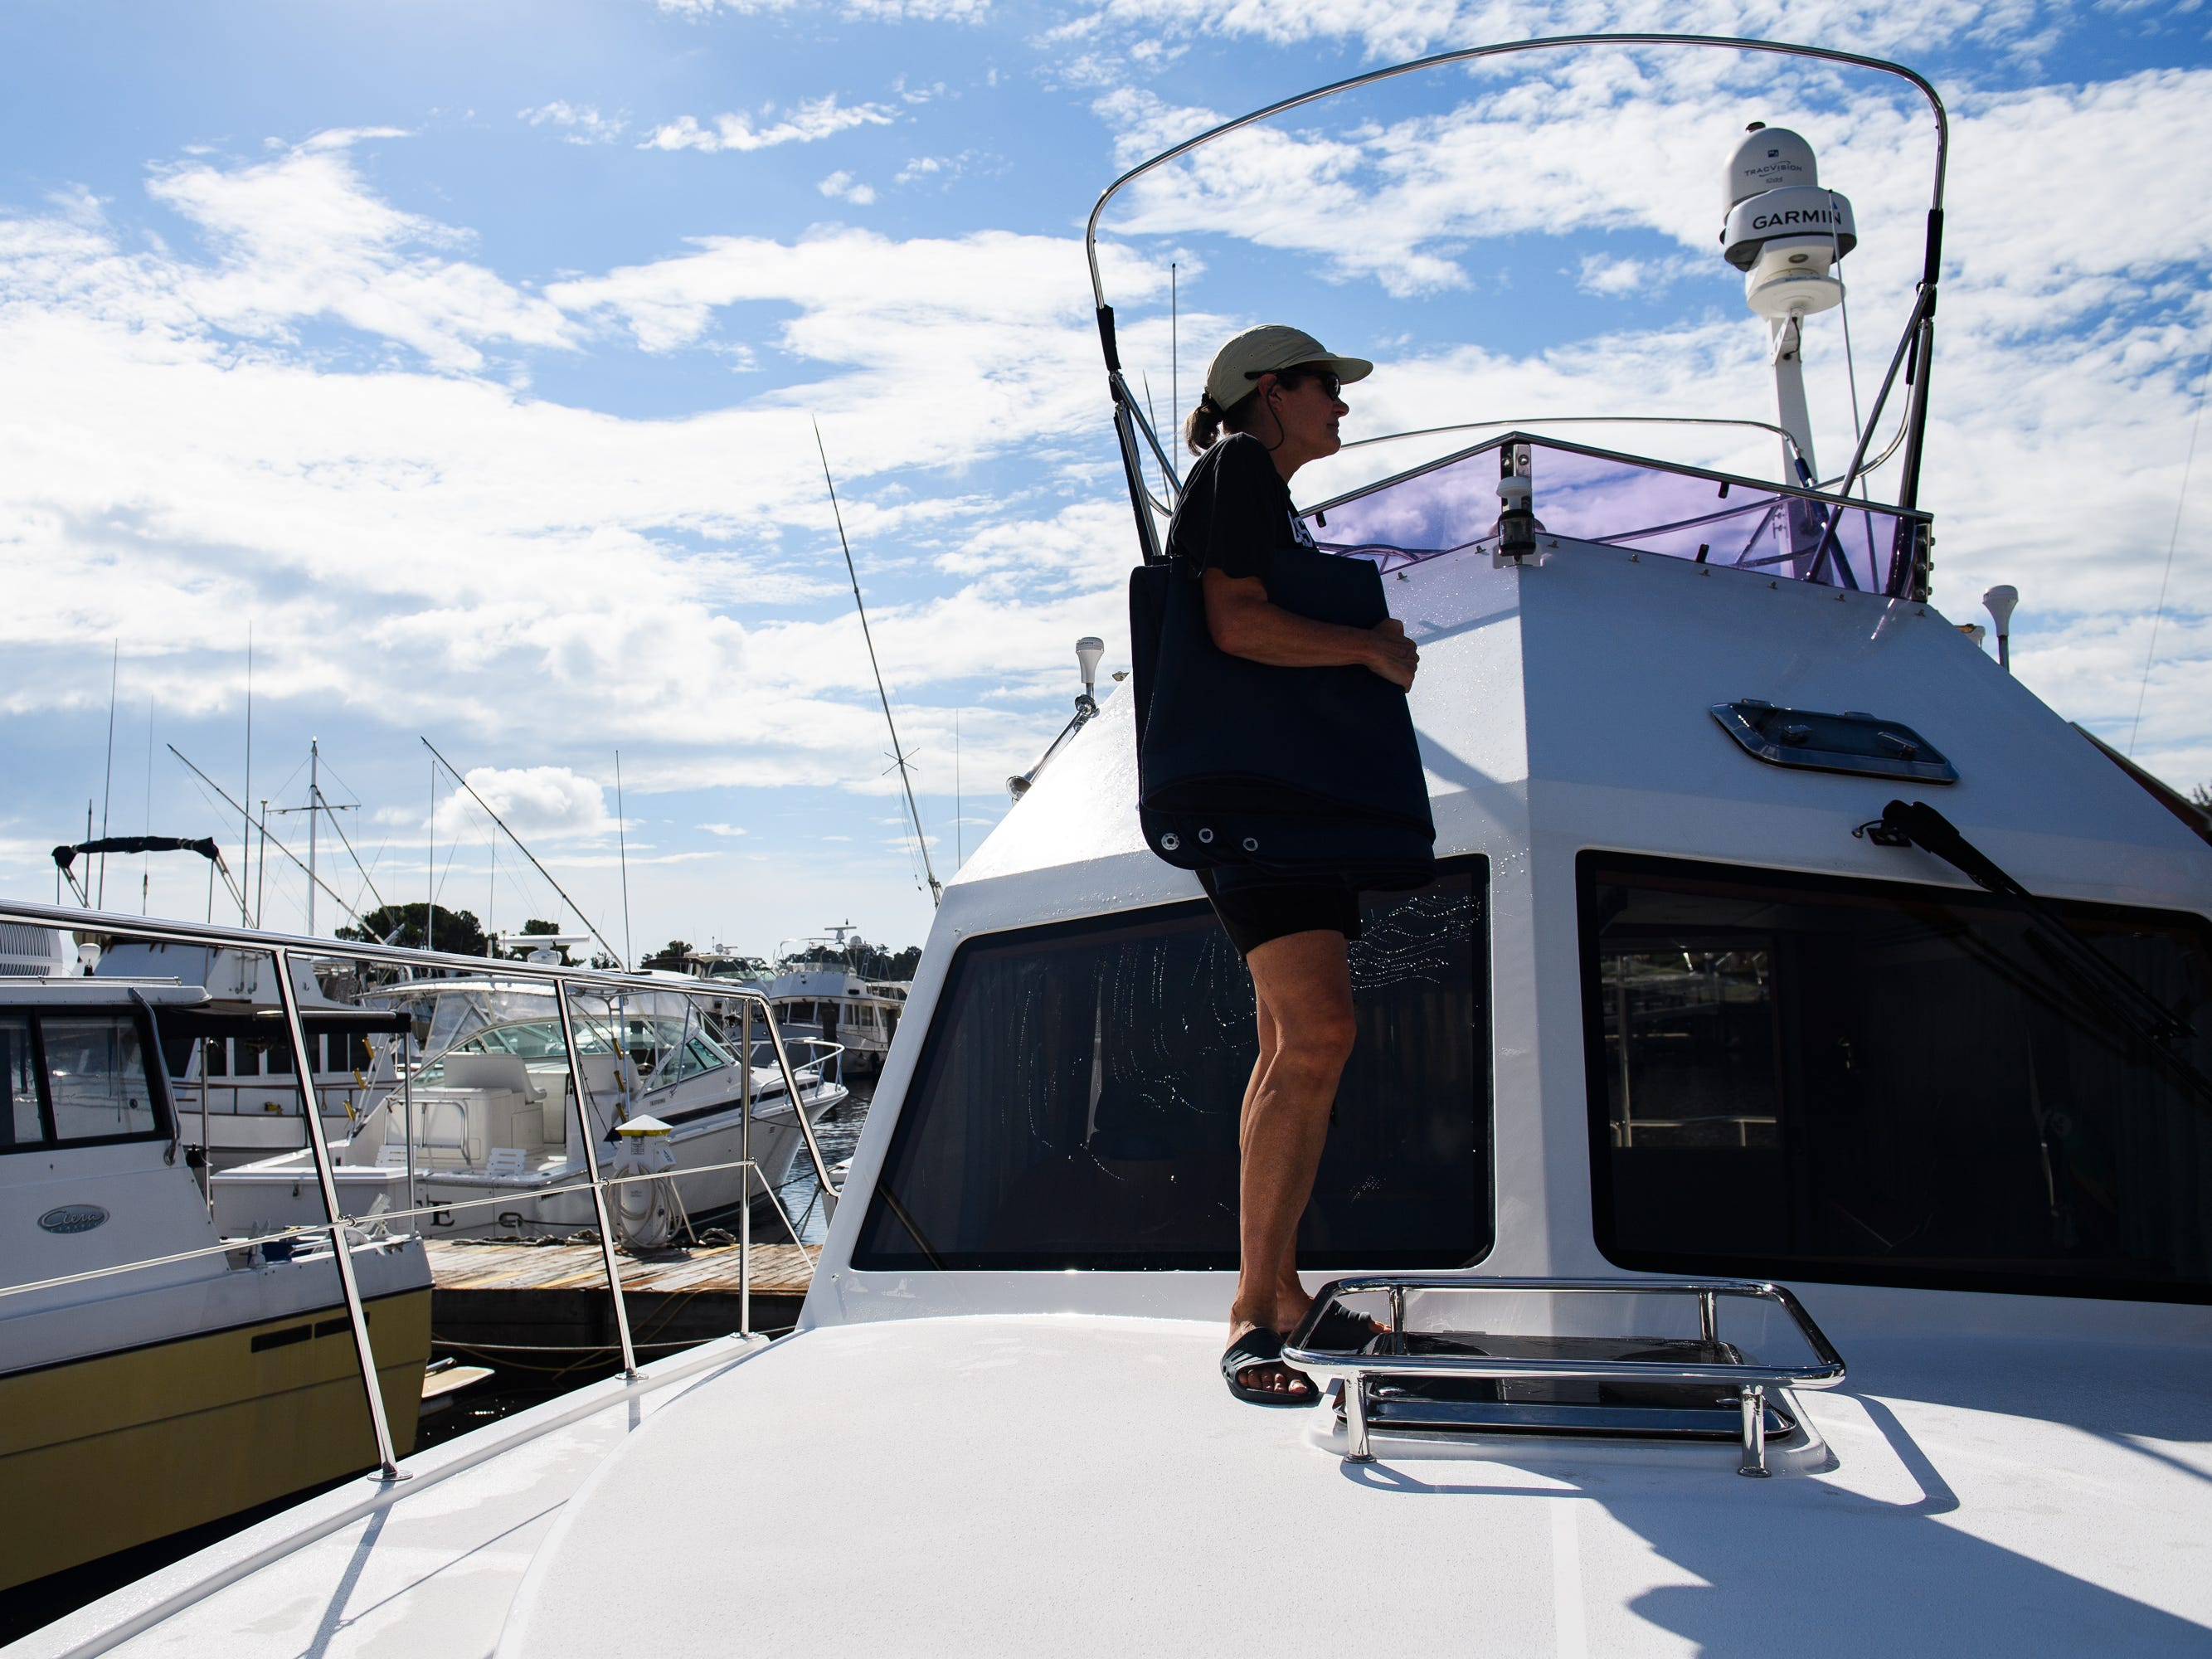 Barbara Coates finishes up preparing her boat for Hurricane Florence at the Lightkeepers Marina in North Myrtle Beach on Wednesday, Sept. 12, 2018.